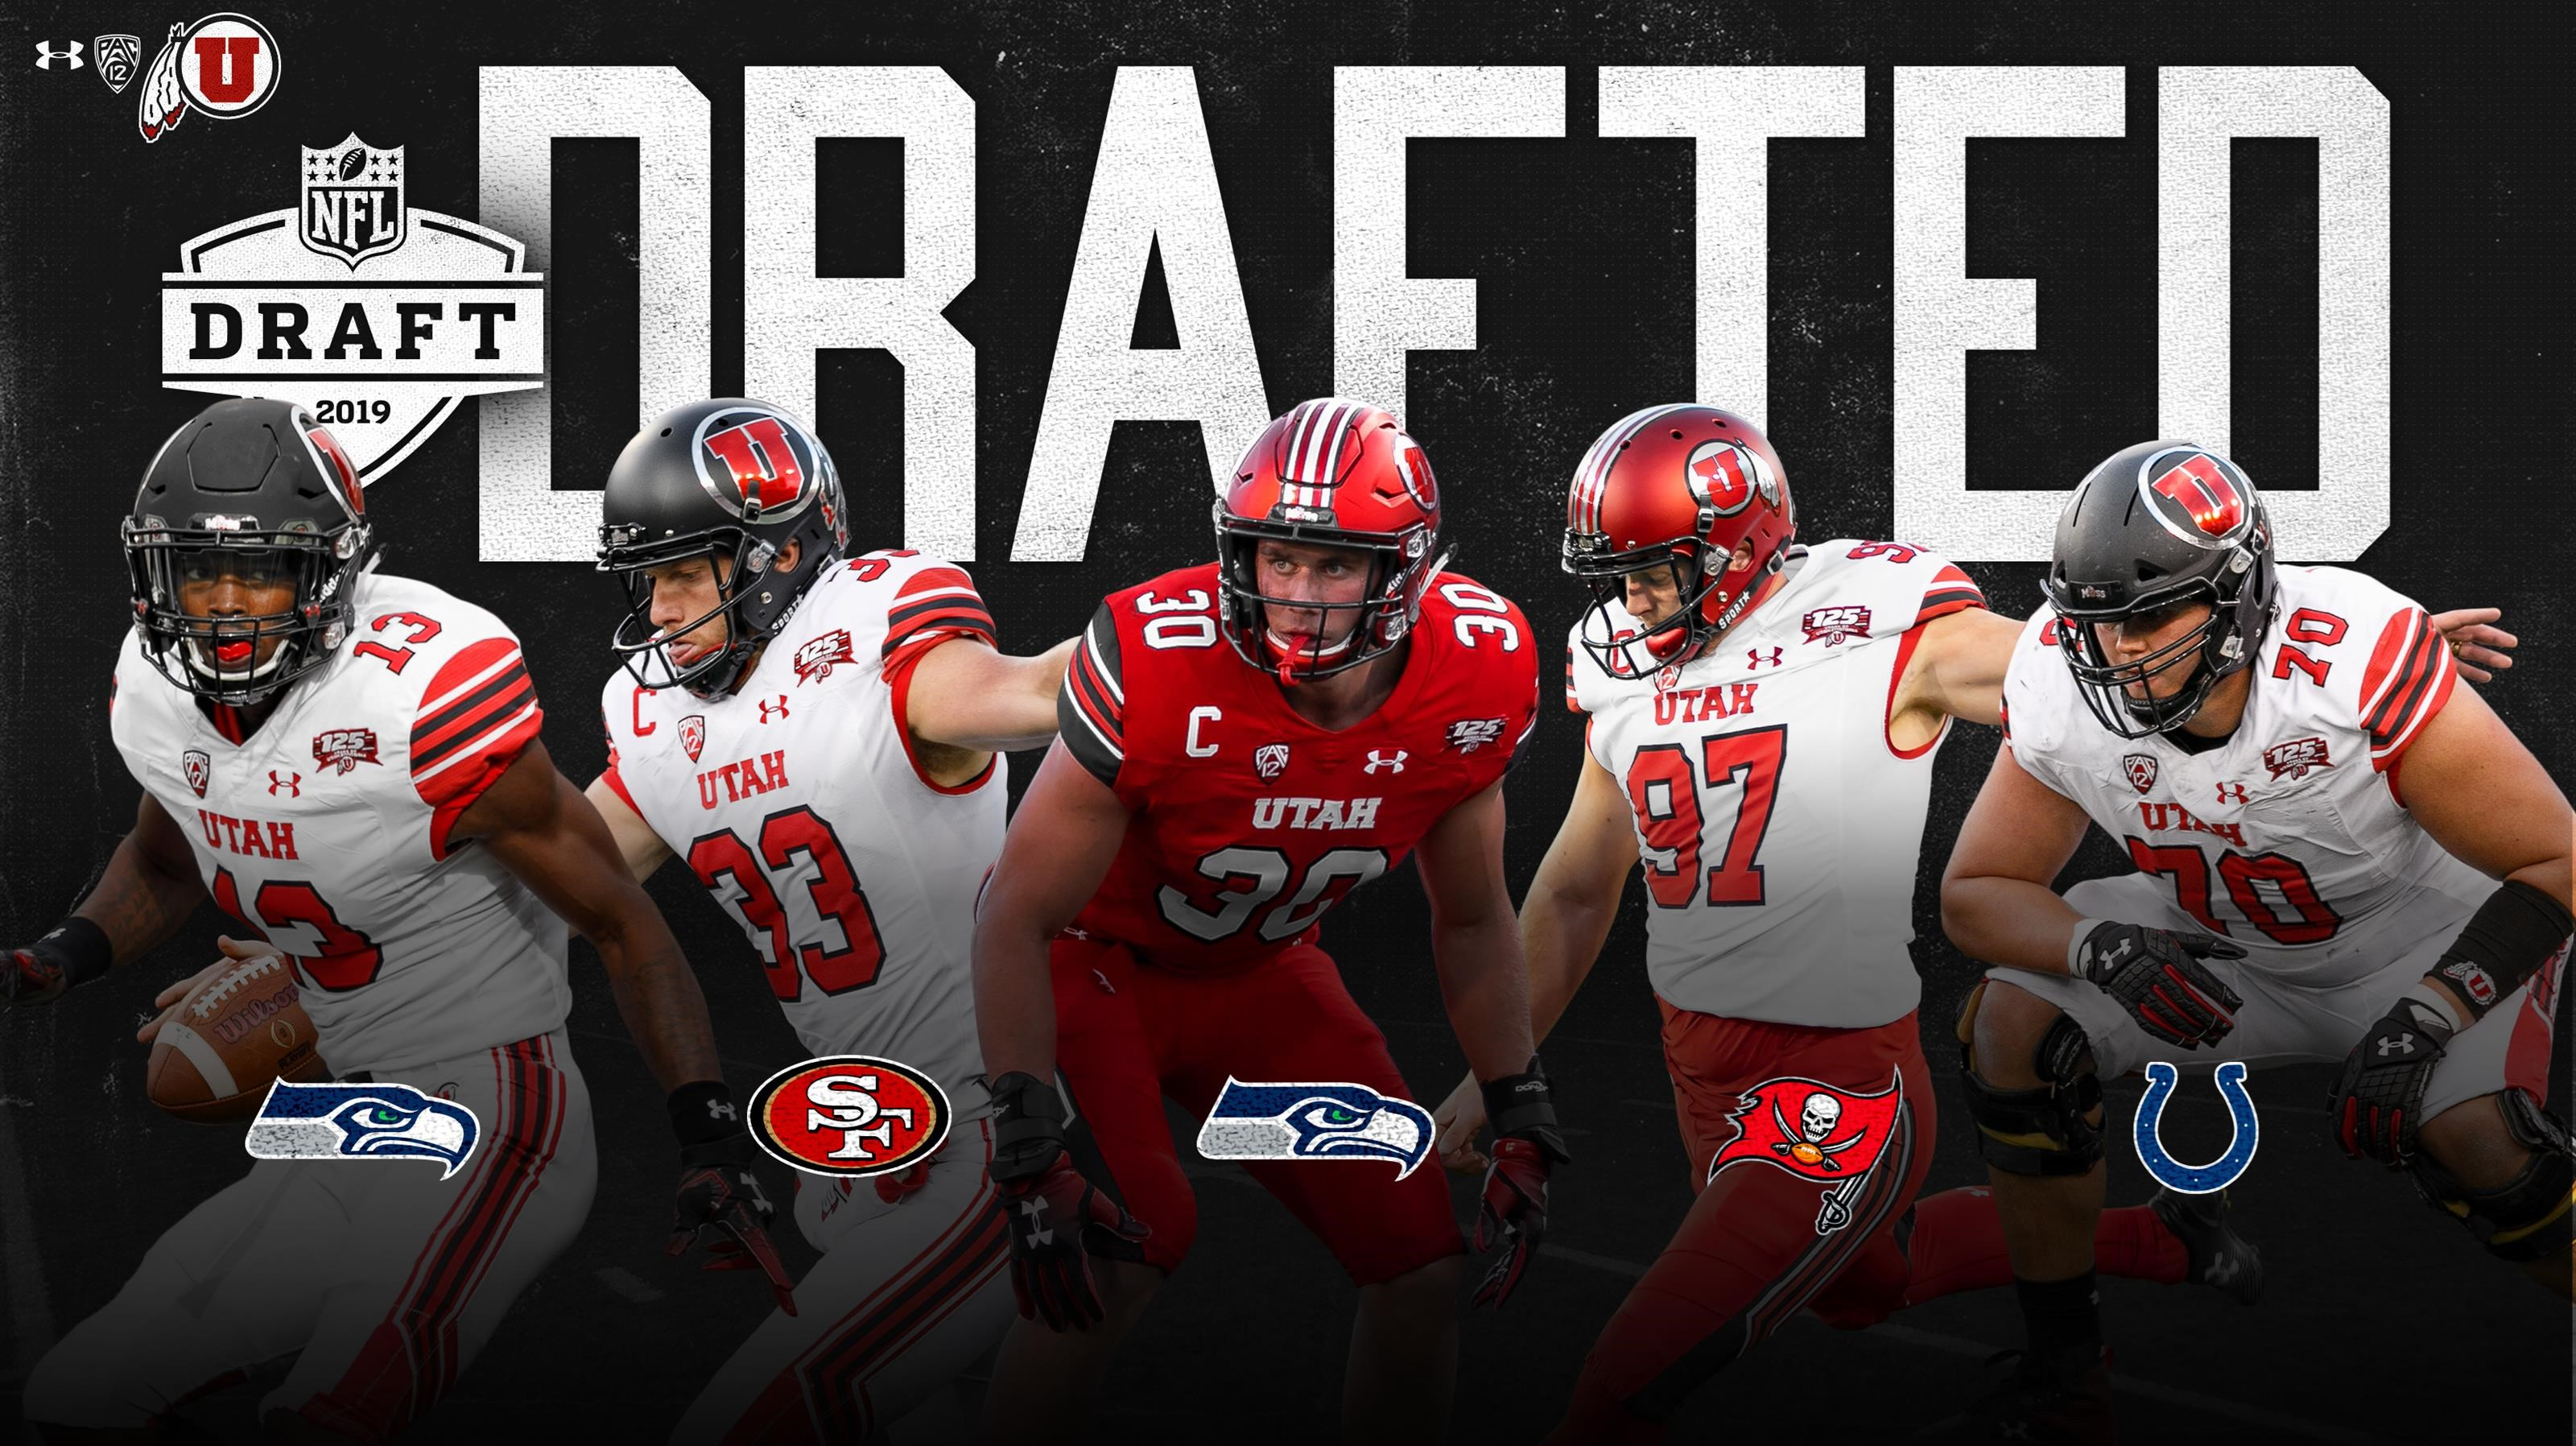 d56a4e550 Utes Send Five To The Pros In 2019 NFL Draft - University of Utah ...